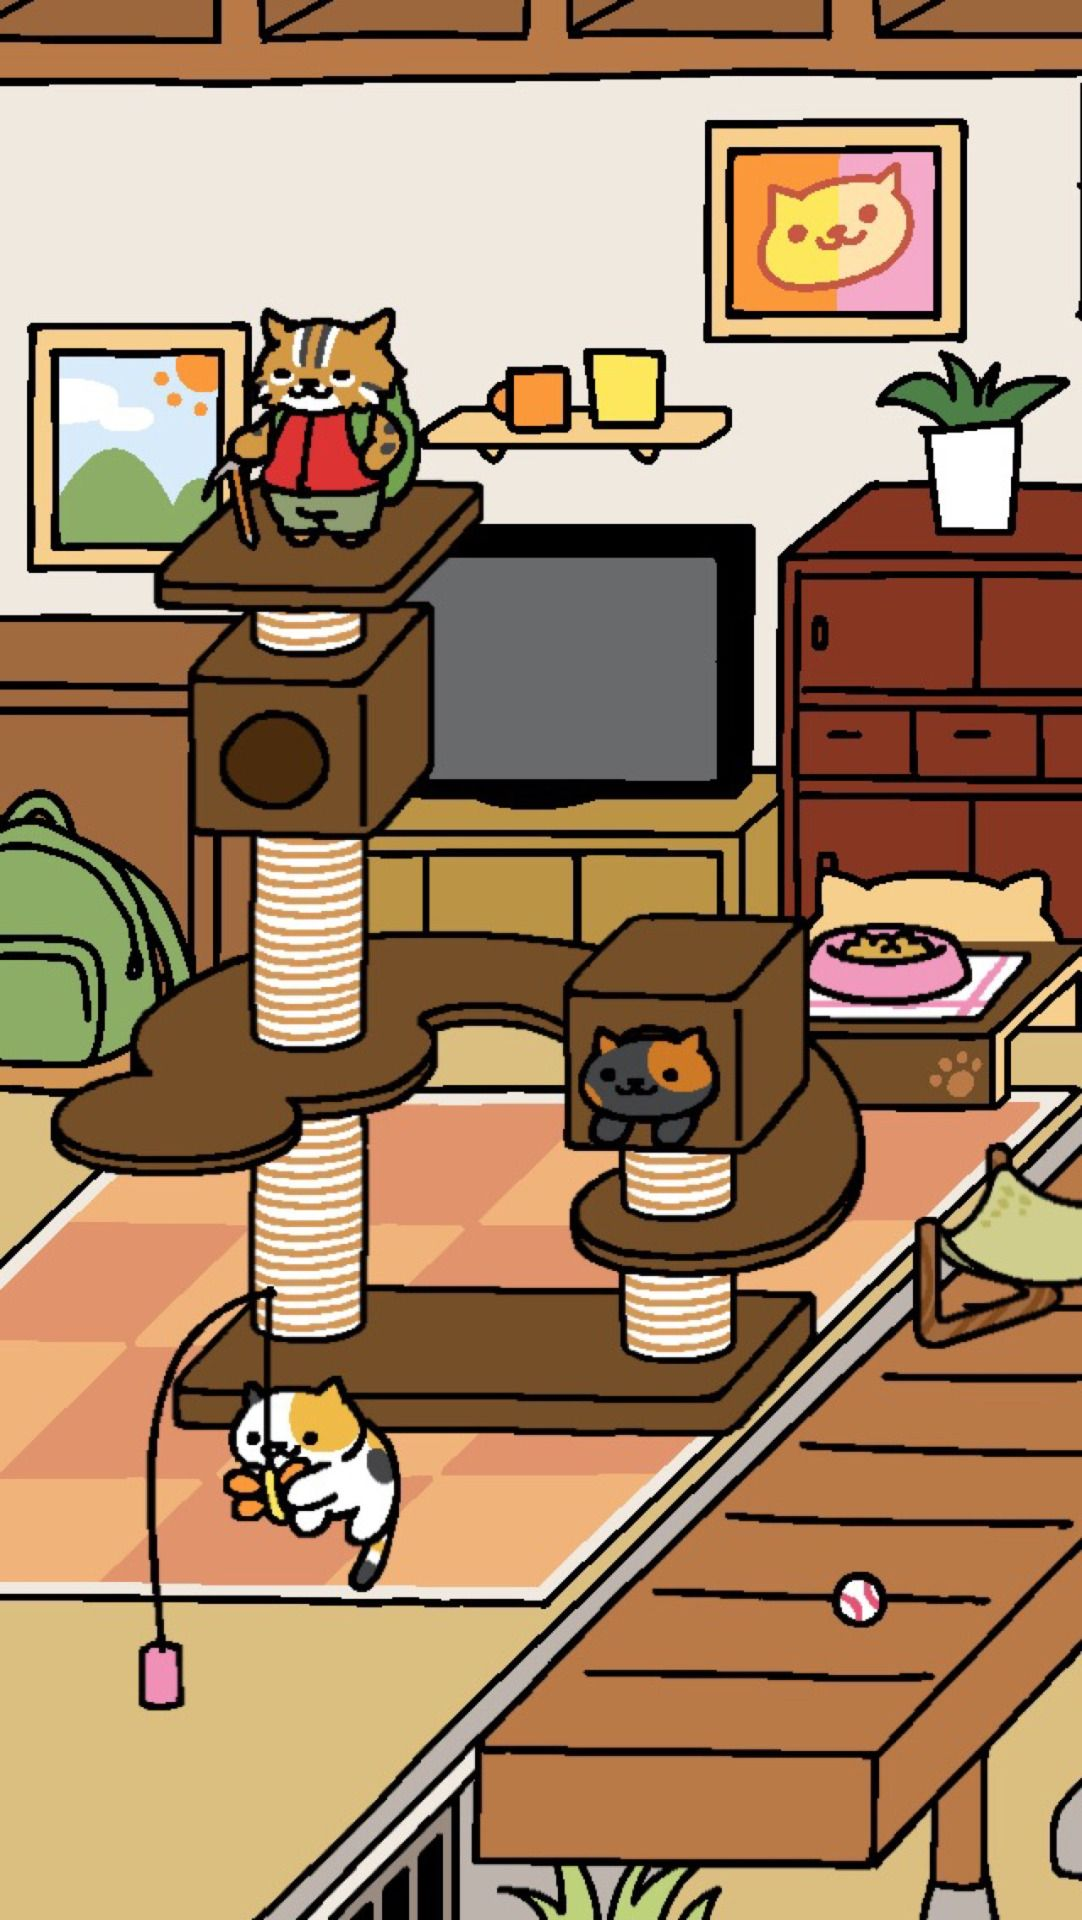 Pin by Naomi♥️cats on Neko Atsume (With images) Neko